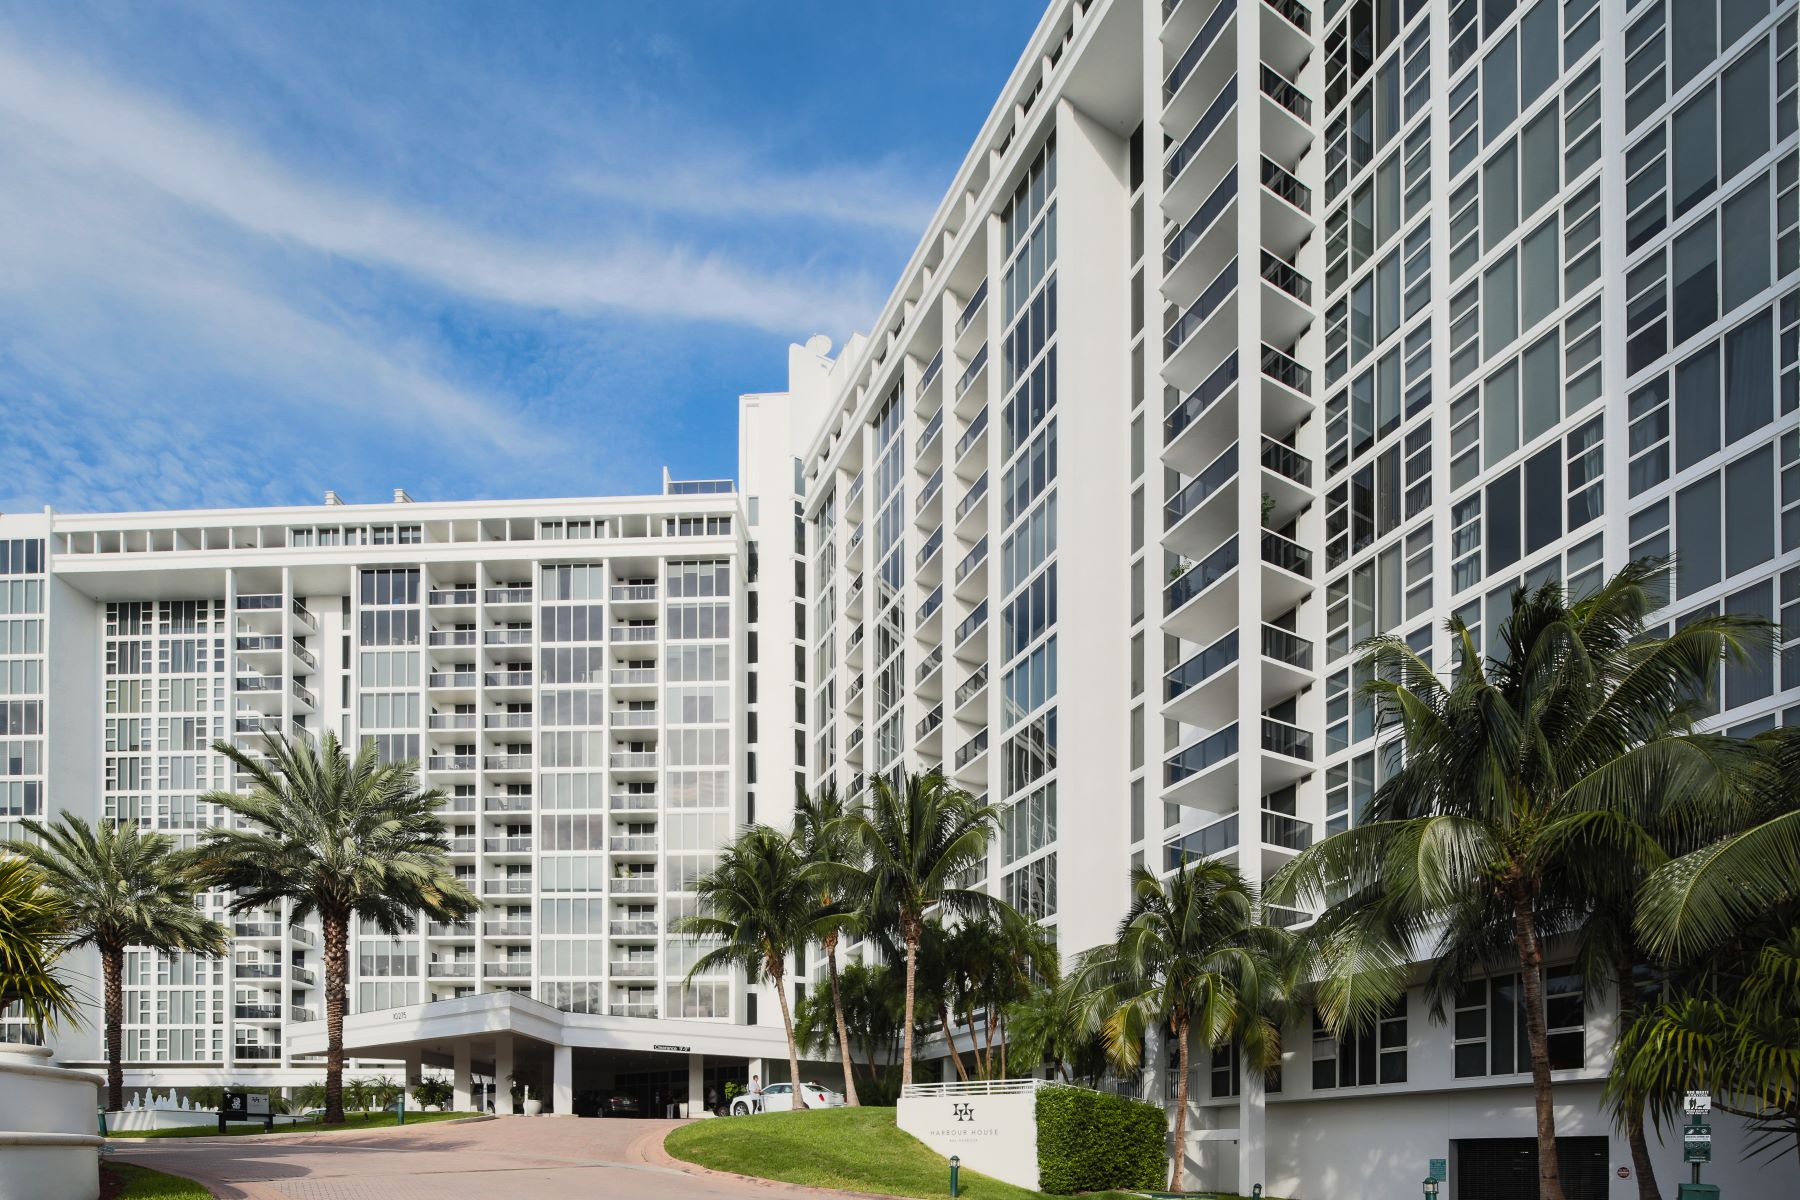 10275 Collins Ave #616 10275 Collins Ave 616 Bal Harbour, Florida 33154 United States